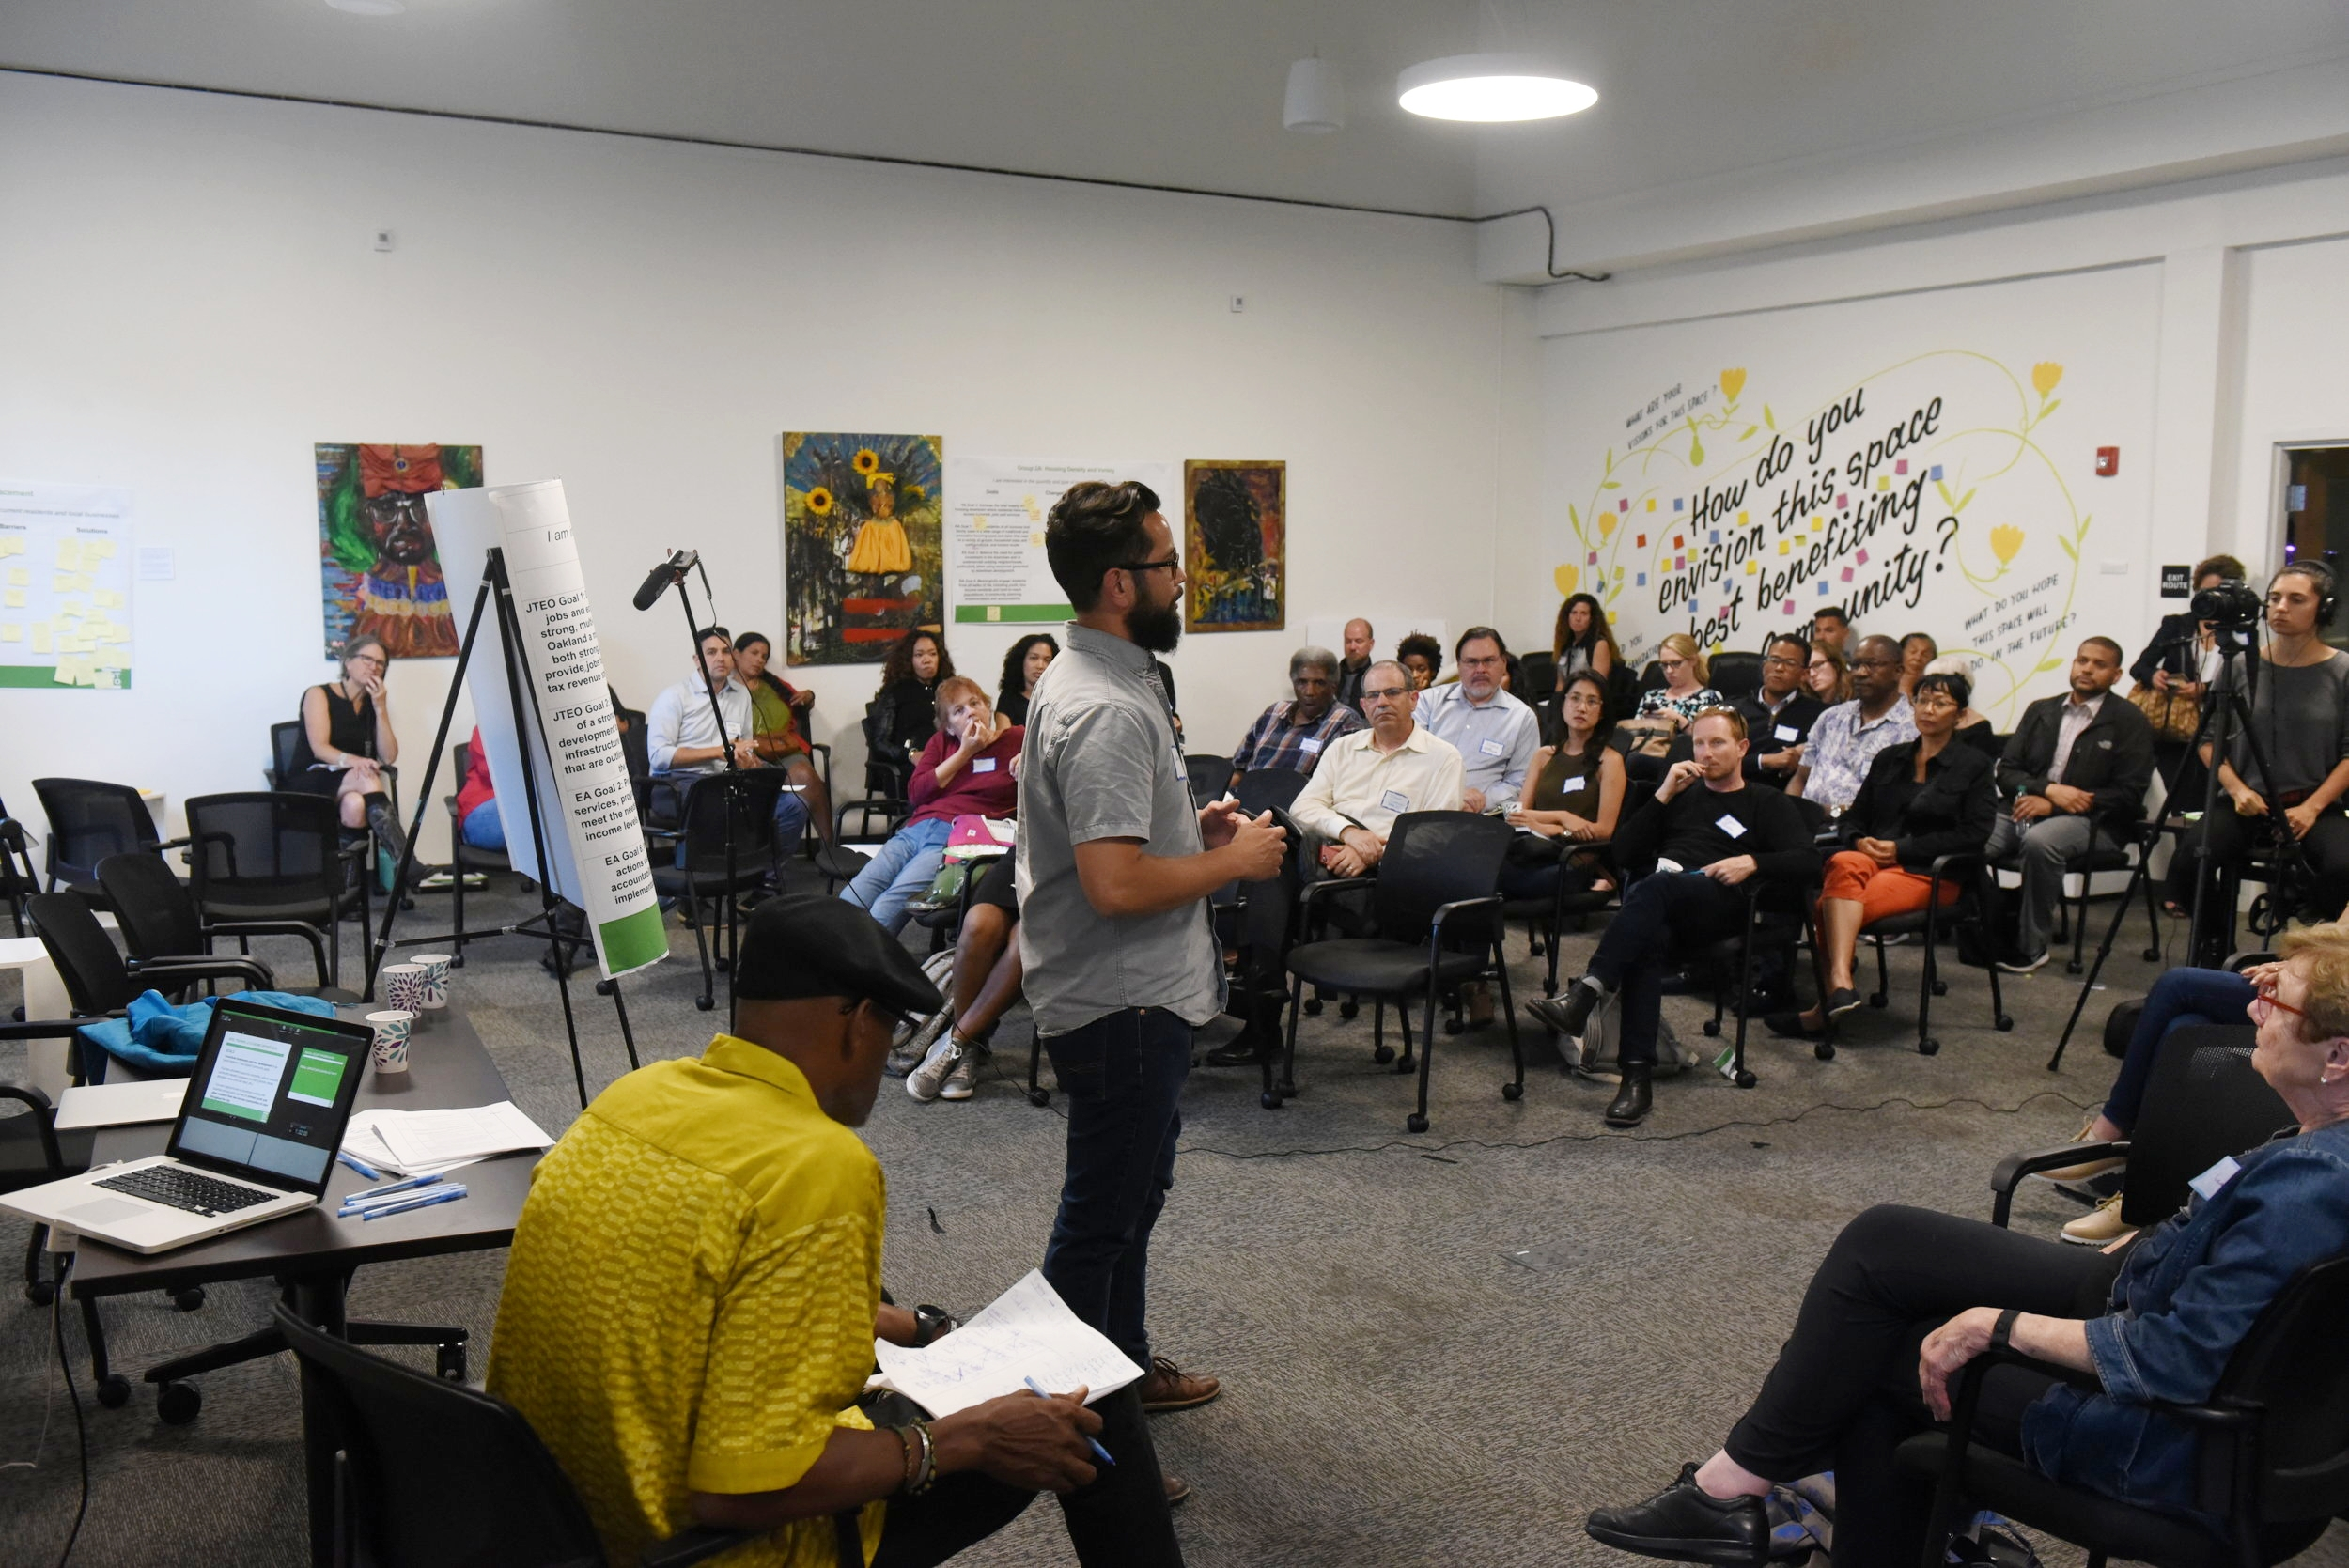 Community report-back after the small group activity where participants reflected and shared their thoughts about the changes, barriers and solutions on the draft goals for the Downtown Oakland Specific Plan.